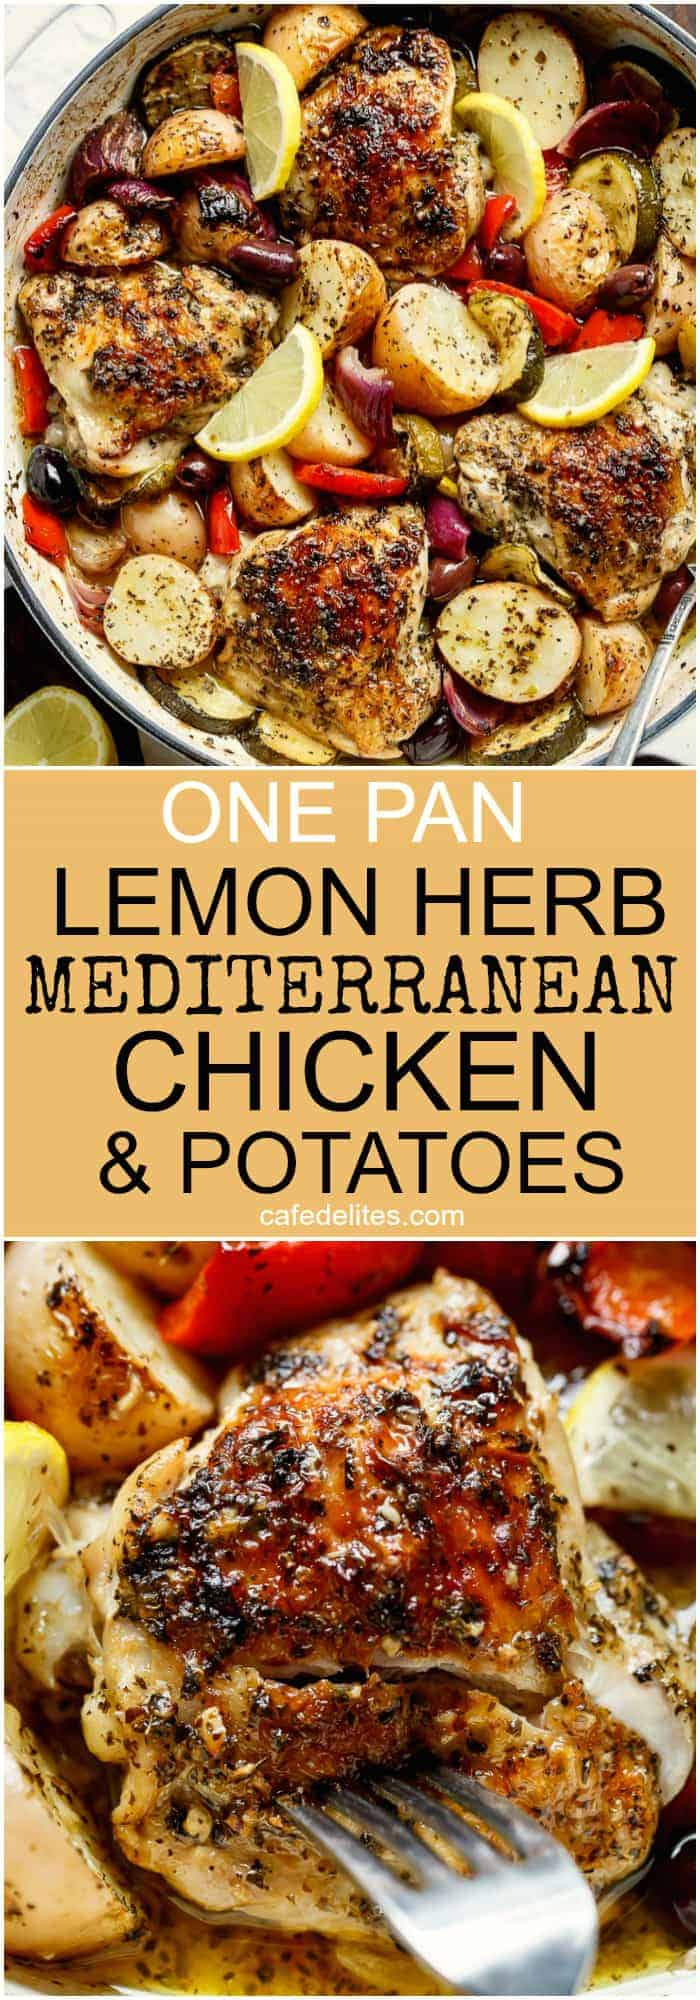 Garlic Lemon Herb Mediterranean Chicken And Potatoes, all made in the ONE PAN for an easy weeknight dinner the whole family will love! | https://cafedelites.com